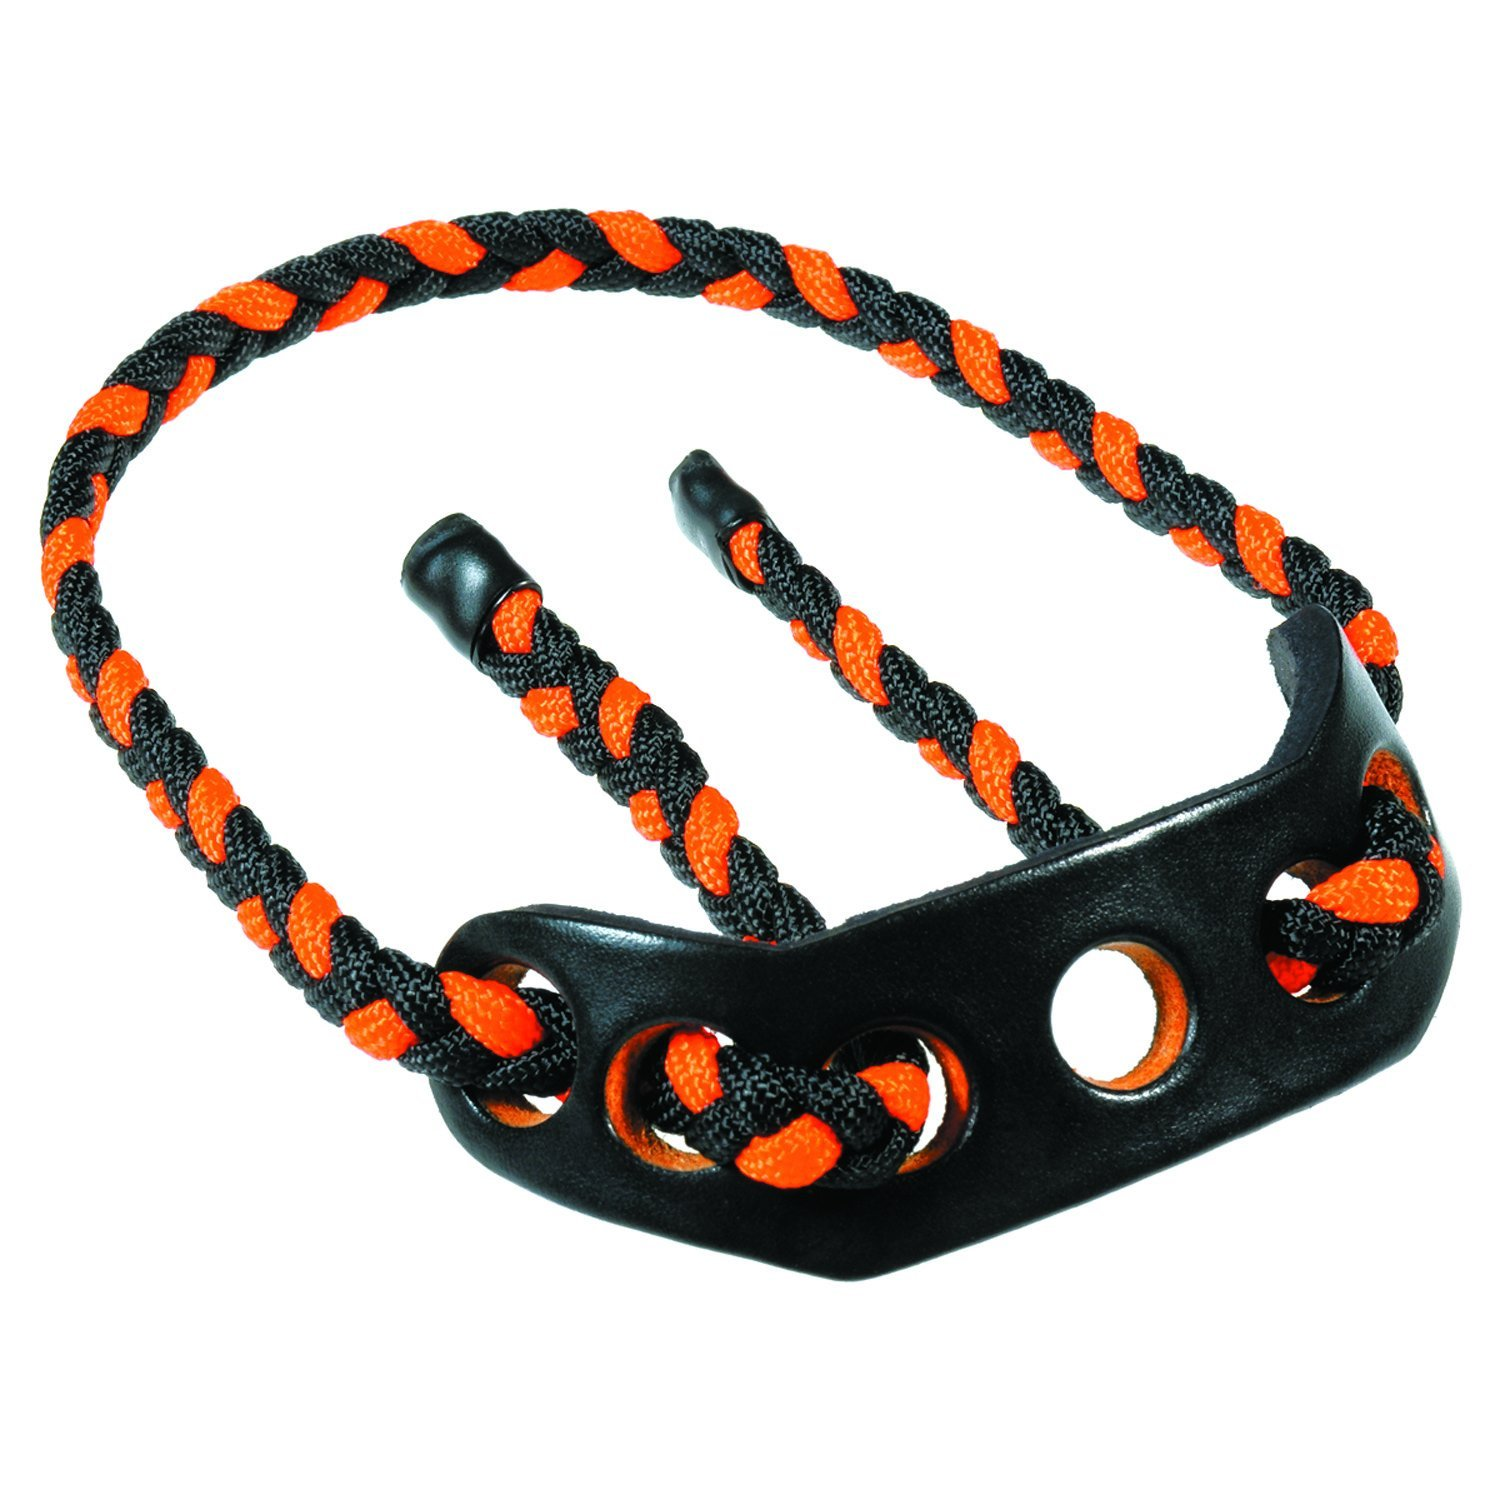 Paradox Products Sg Series Target Bow Sling Black/Neon Orange by Paradox Products Llc (Image #1)